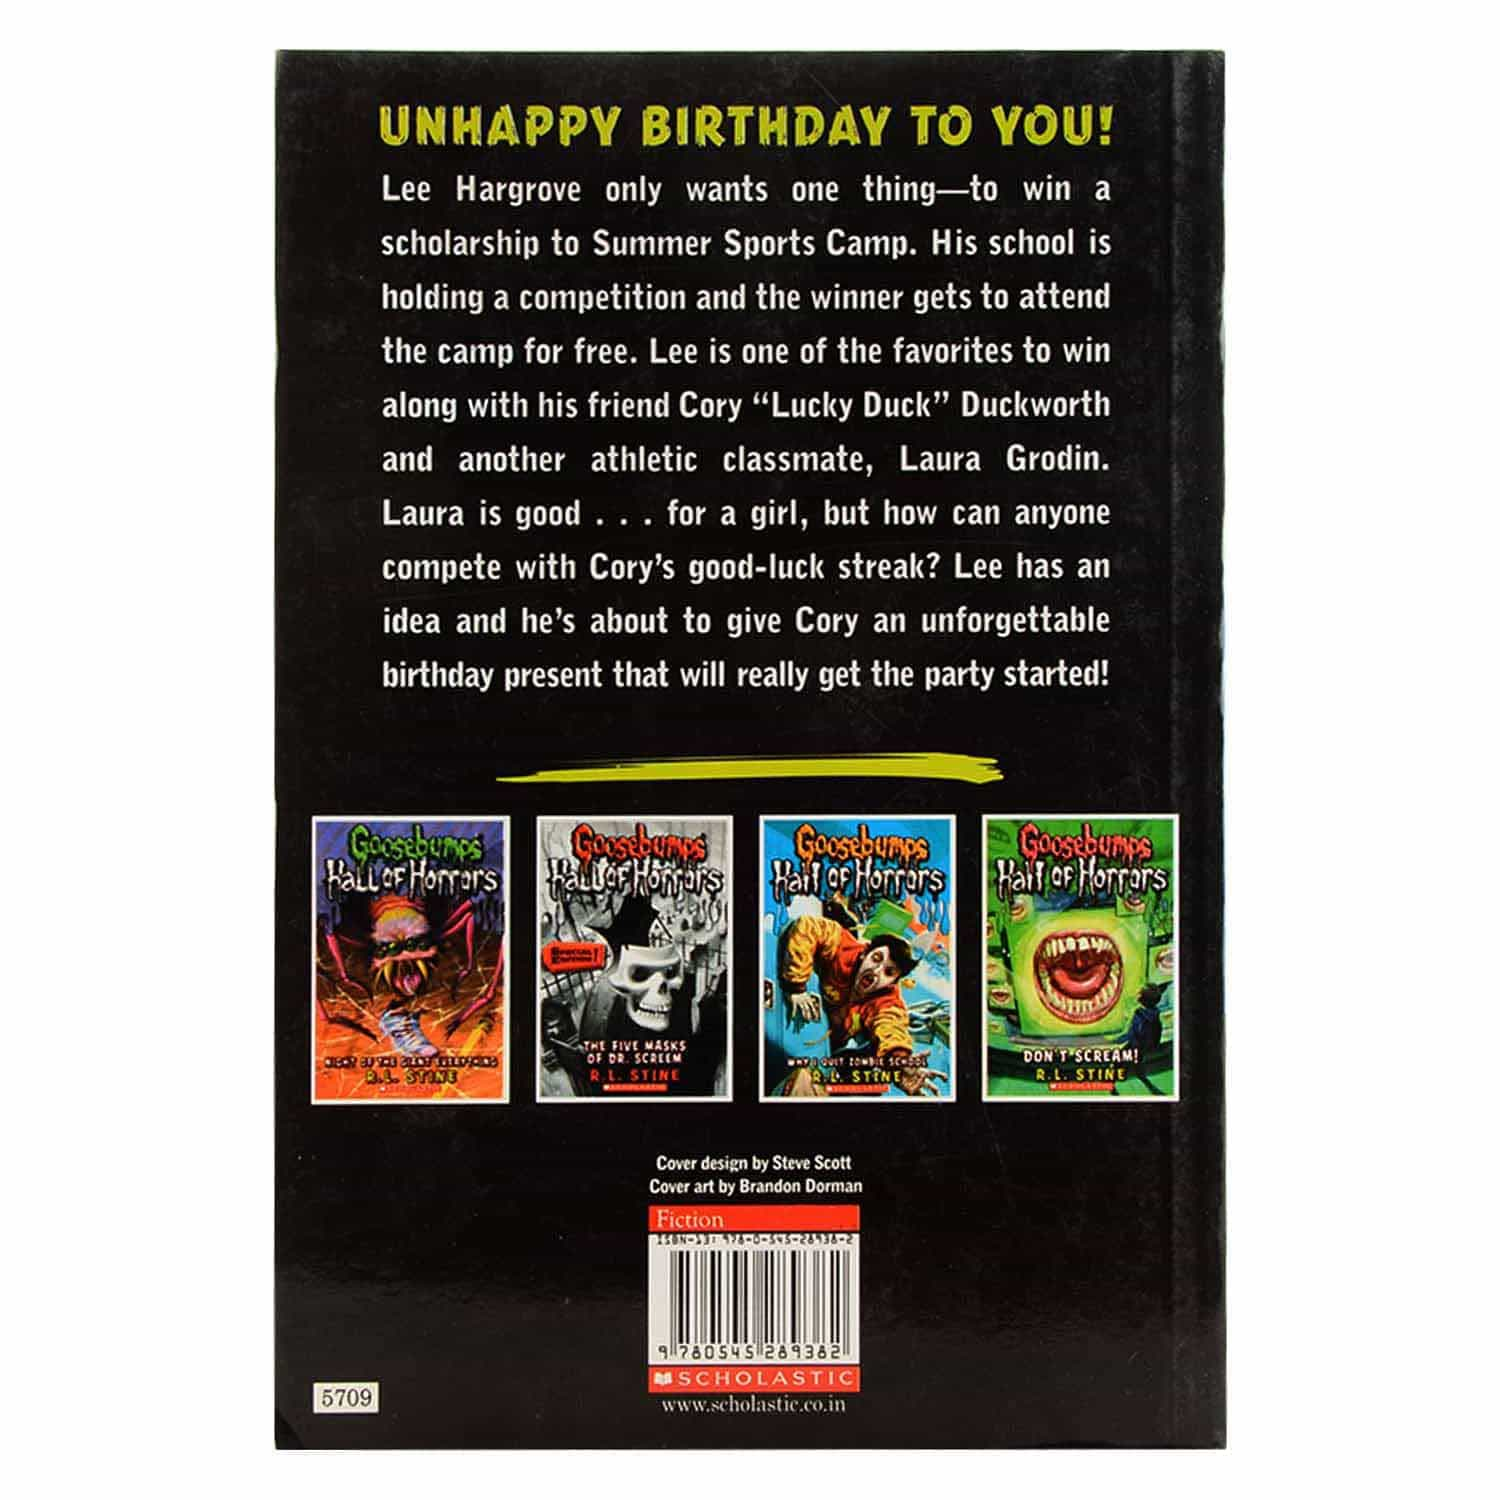 Goosebumps Hall of Horrors Series - The Birthday Party of no Return